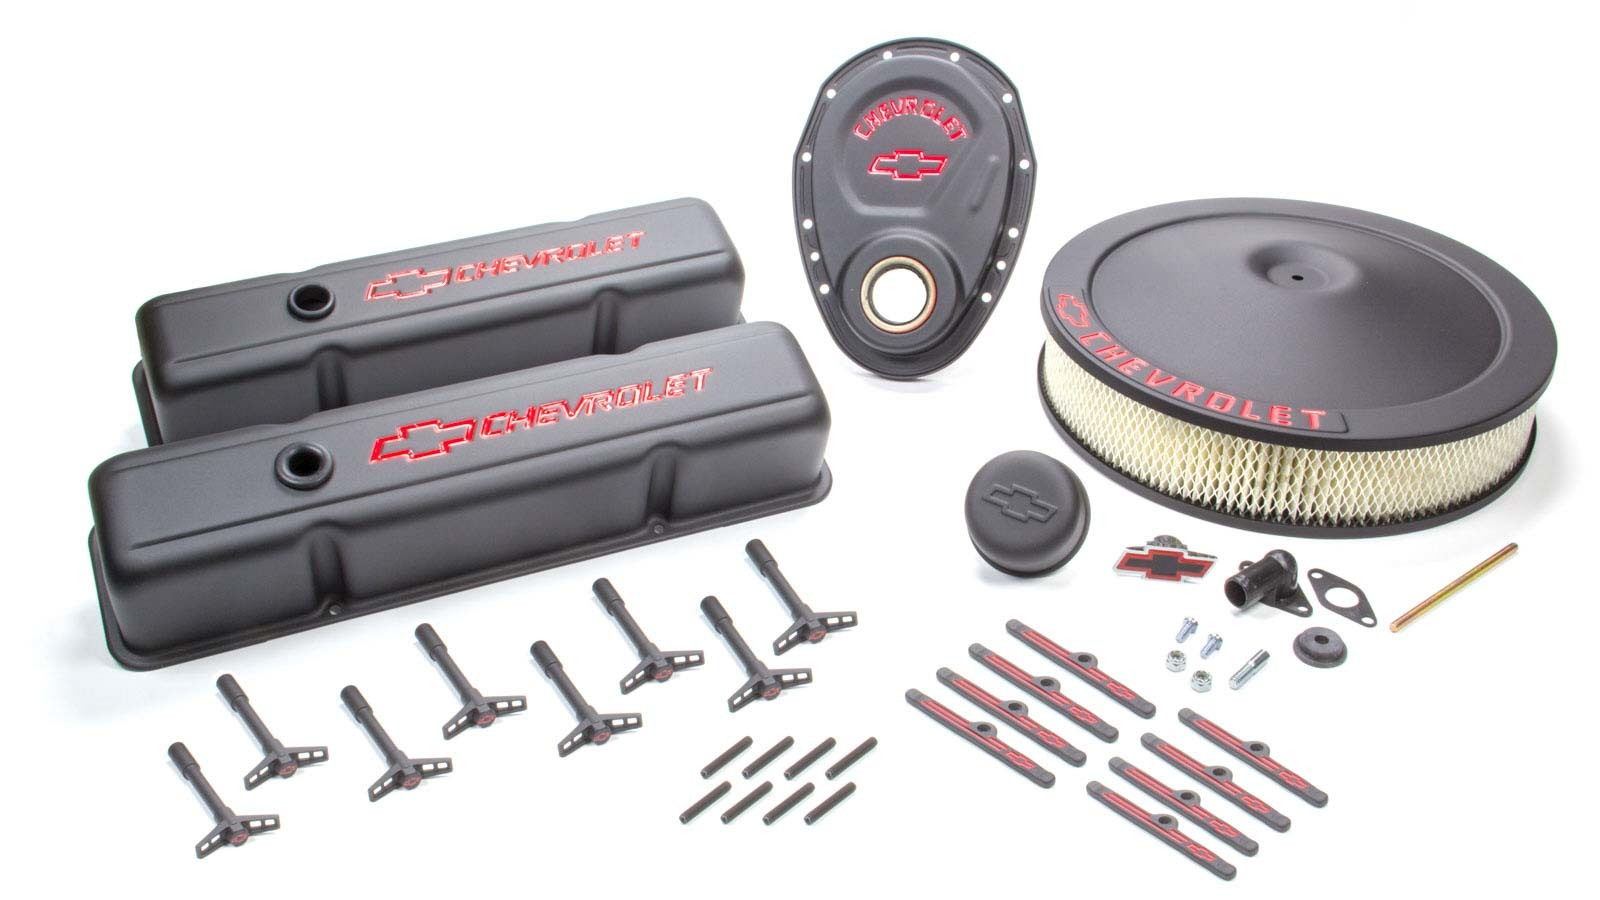 Proform 141-758 Engine Dress Up Kit, Air Cleaner / Tall Valve Covers / Breather / Hardware / Timing Cover, Chevy Logo, Steel, Black Crinkle, Small Block Chevy, Kit